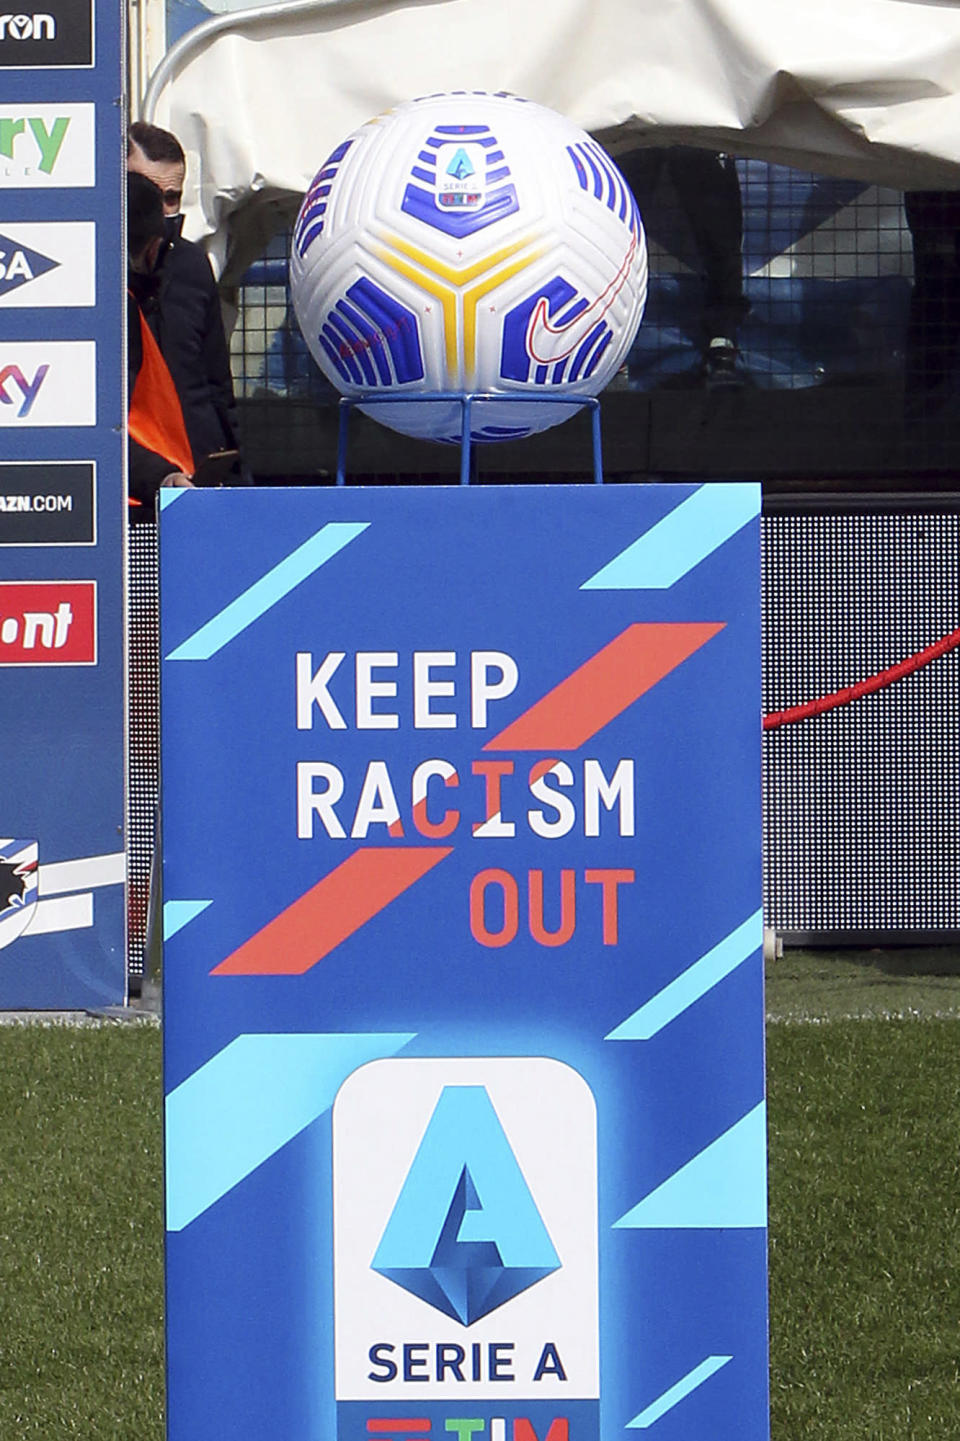 """The logo """"Keep racism out"""", part of the new anti-racism campaign launched last Sunday by the Italian soccer league, is displayed on the field prior to the Serie A match between Sampdoria and Torino at the Luigi Ferraris stadium in Genoa, Italy, Sunday, March 21, 2021. Serie A's efforts to combat racism inside its stadiums was in shambles little more than a year ago when league CEO Luigi De Siervo decided to take matters into his own hands. (Tano Pecoraro/LaPresse via AP)"""